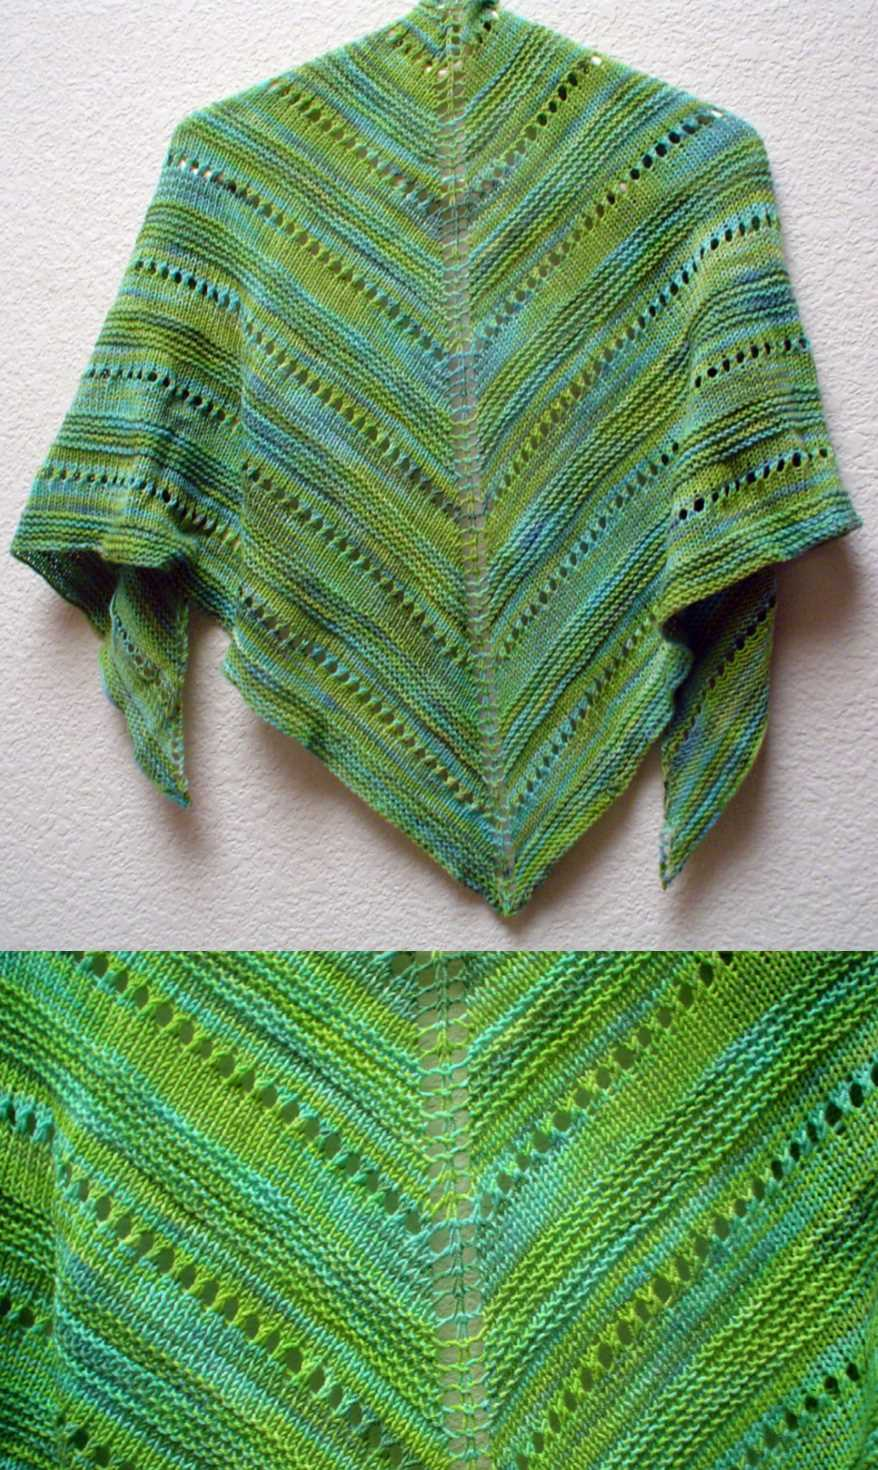 Free Lace Knitting Patterns For Beginners To Download Now